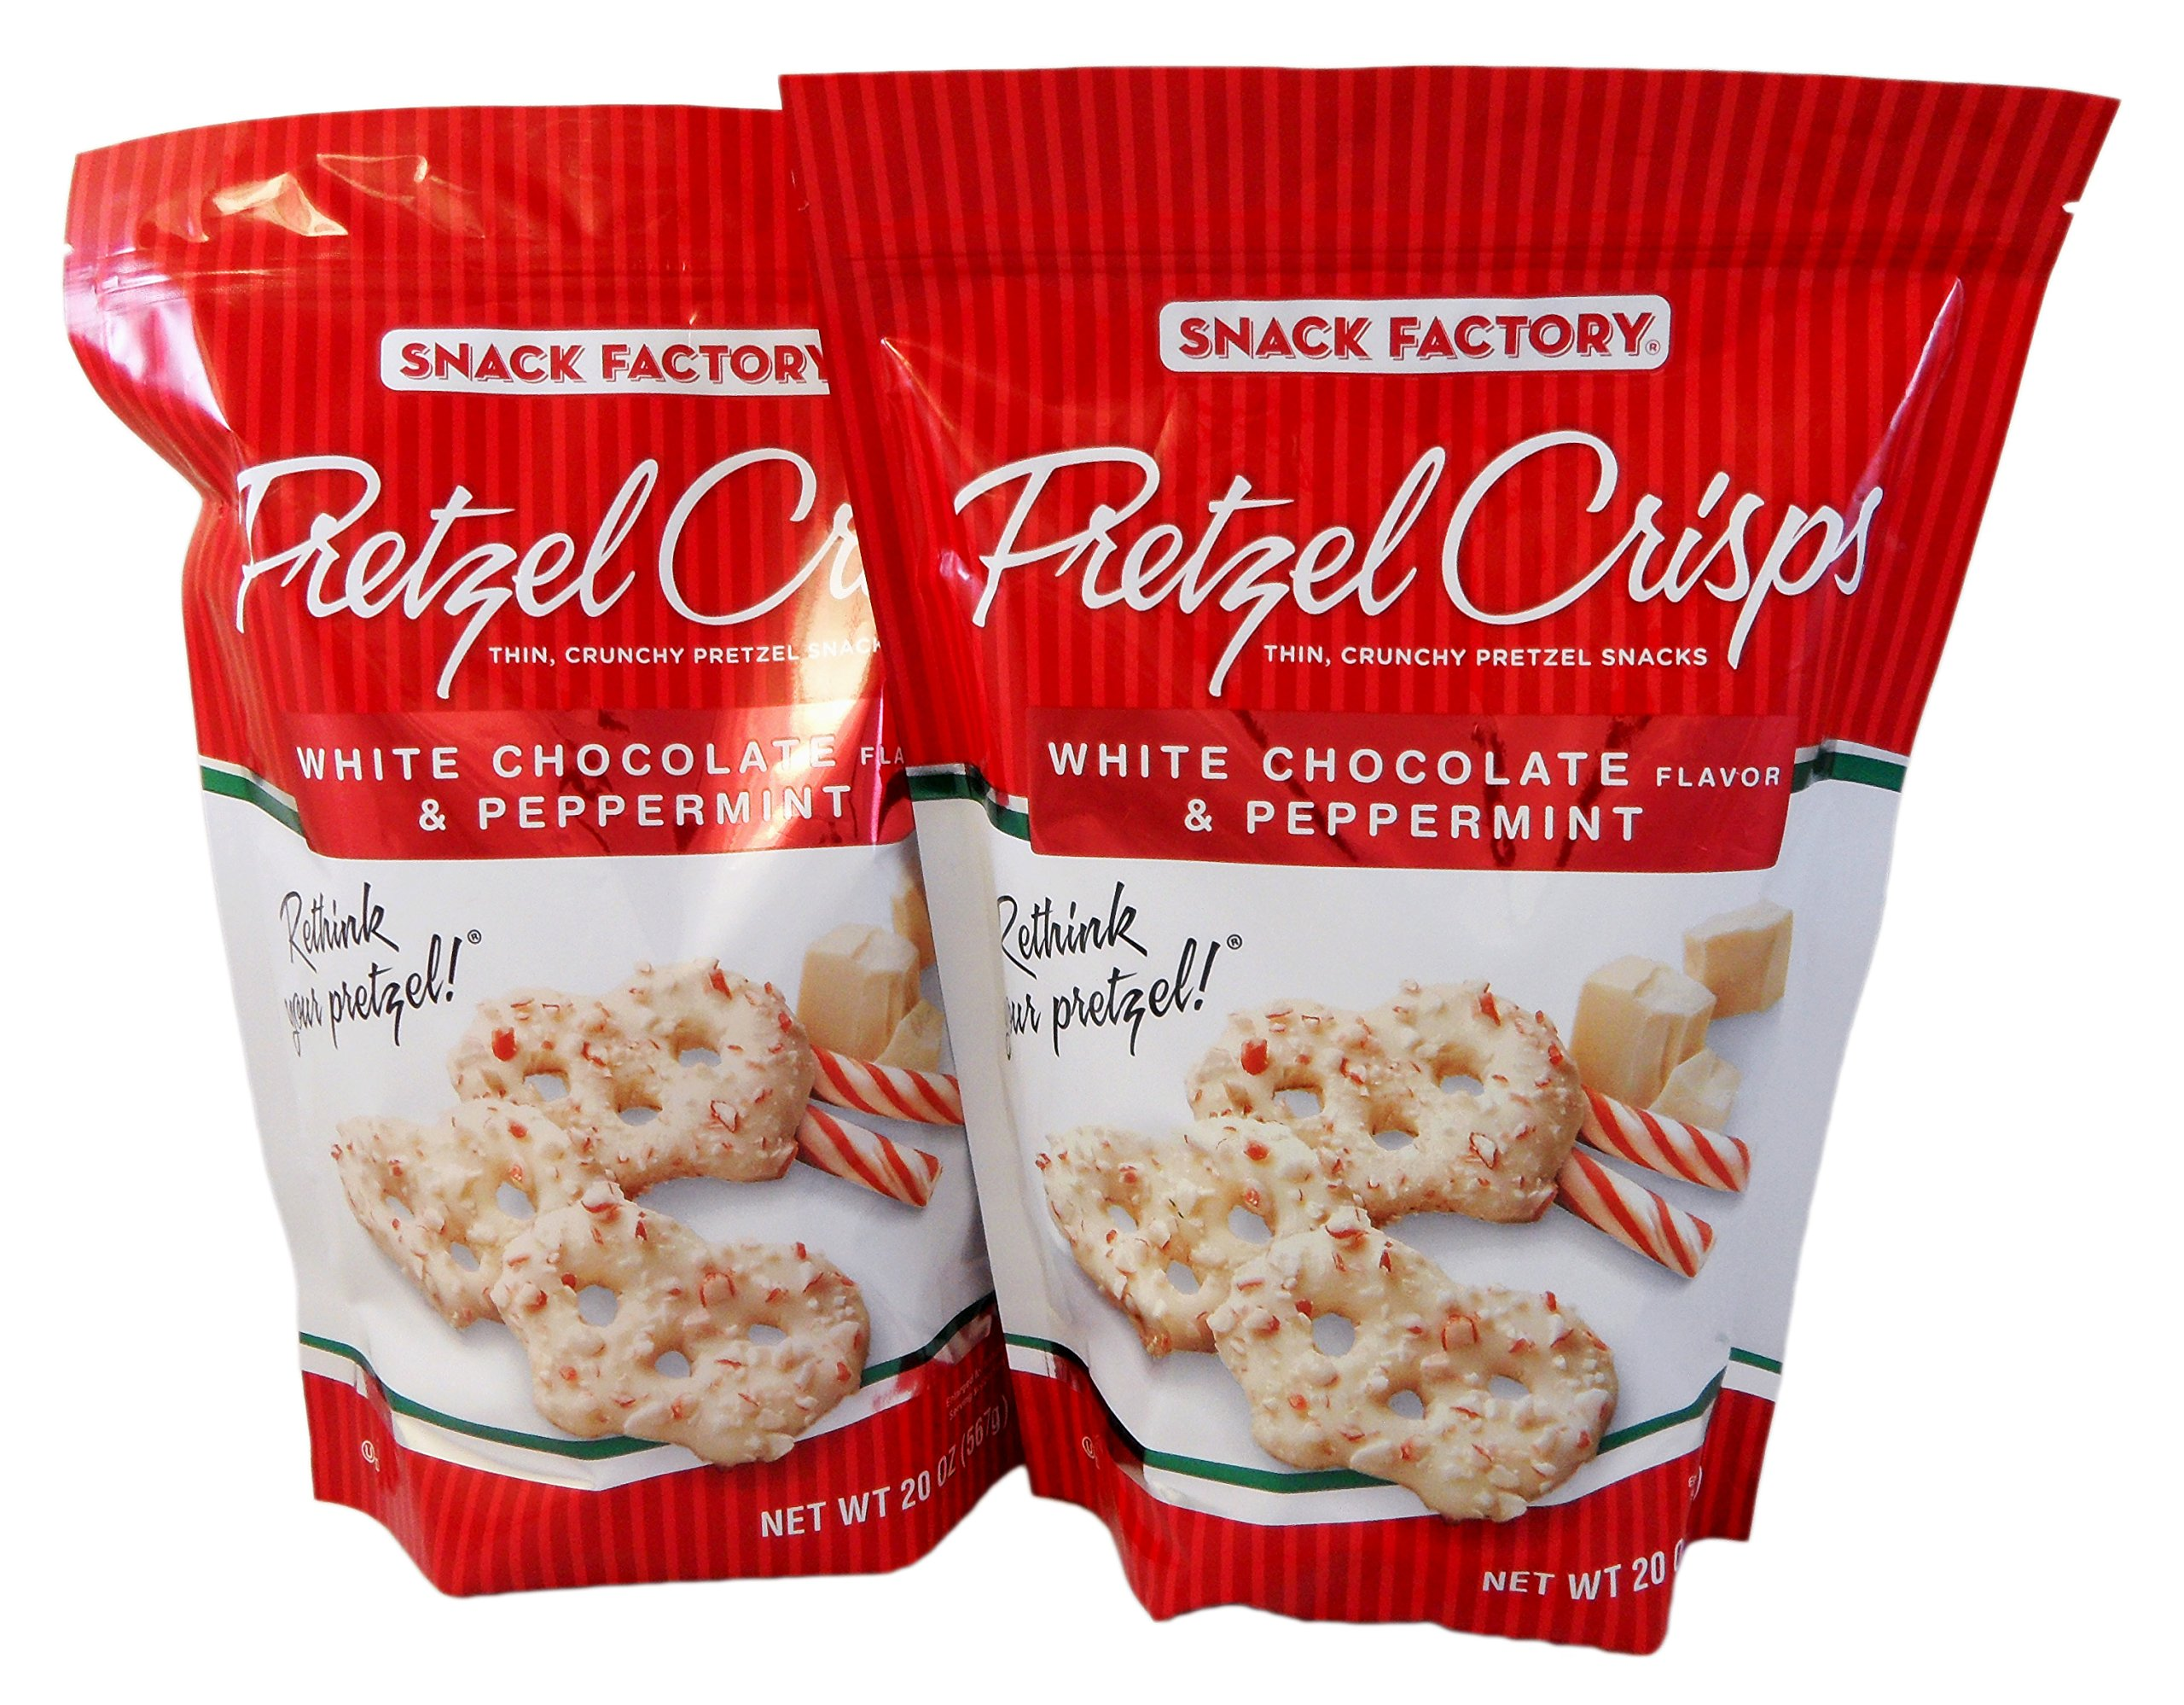 Snack Factory Pretzel Crisps White Chocolate Flavor And Peppermint